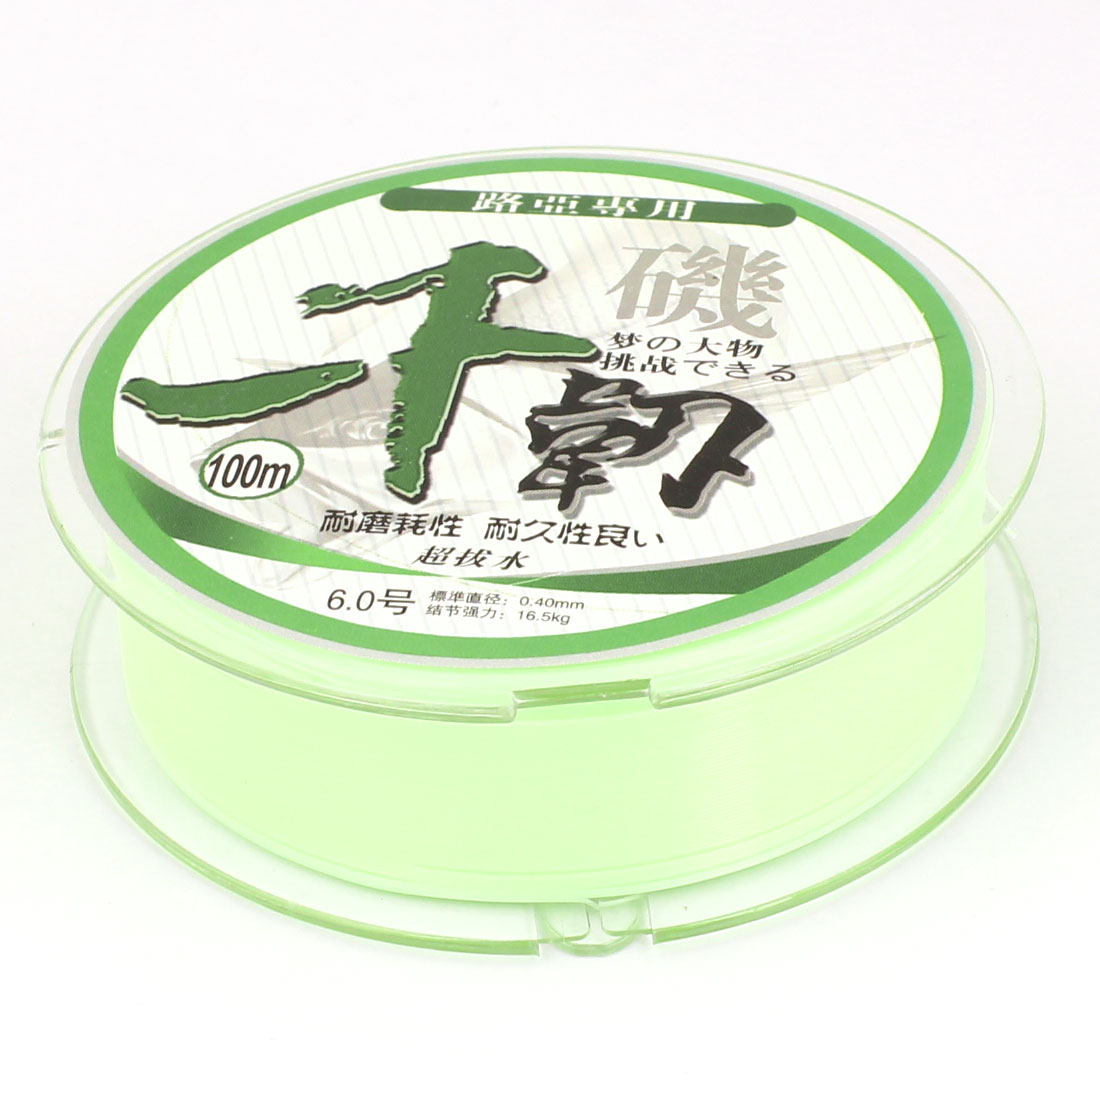 0.40mm Diameter 16.5Kg Light Green Nylon Freshwater Fishing Spool Line 100M